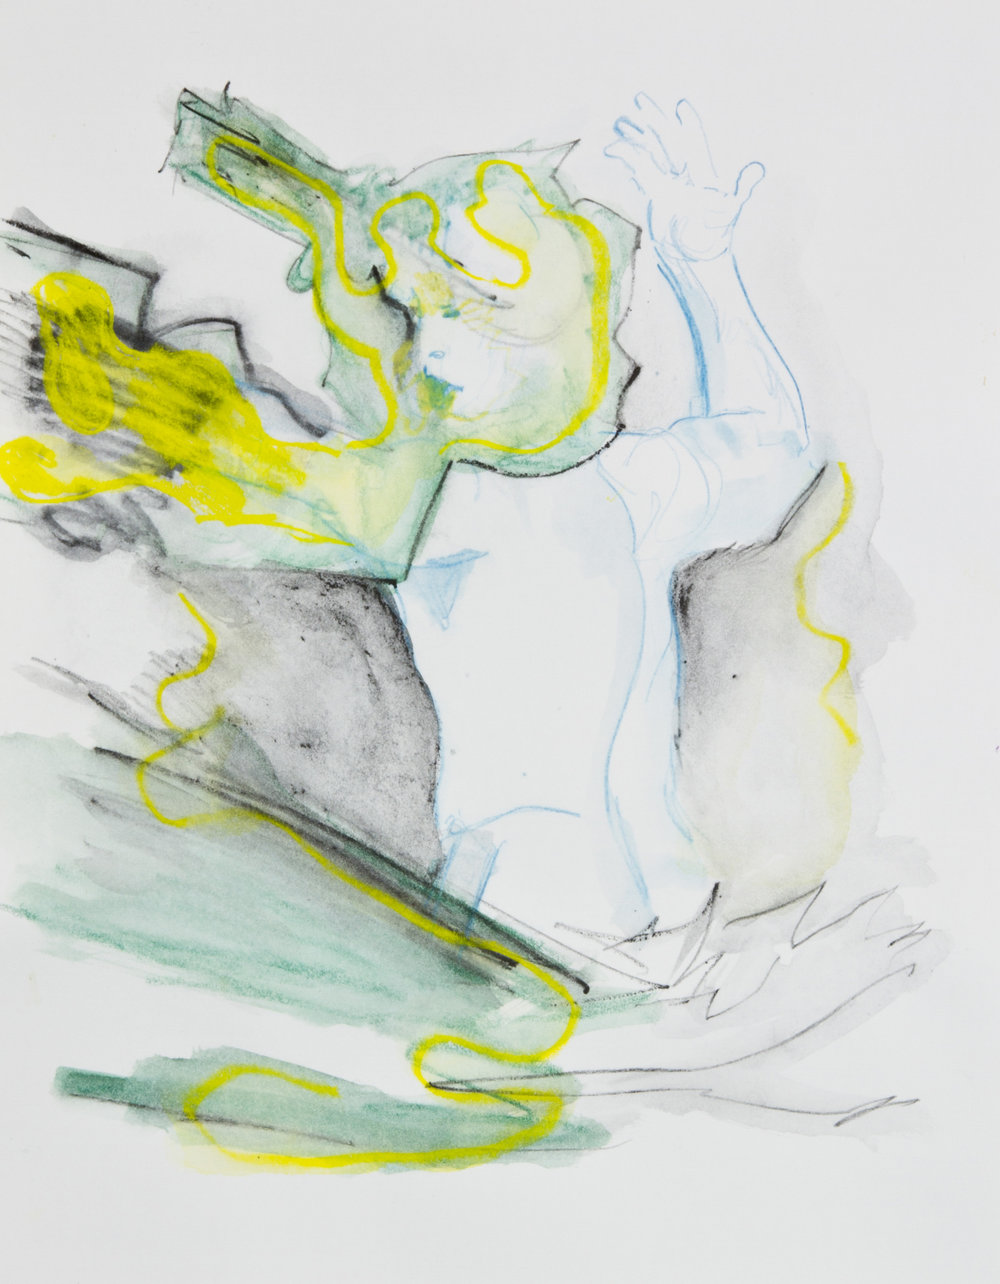 Thread Yield, 2013, graphite, crayon and watercolor pencil on paper, 11x14 inches